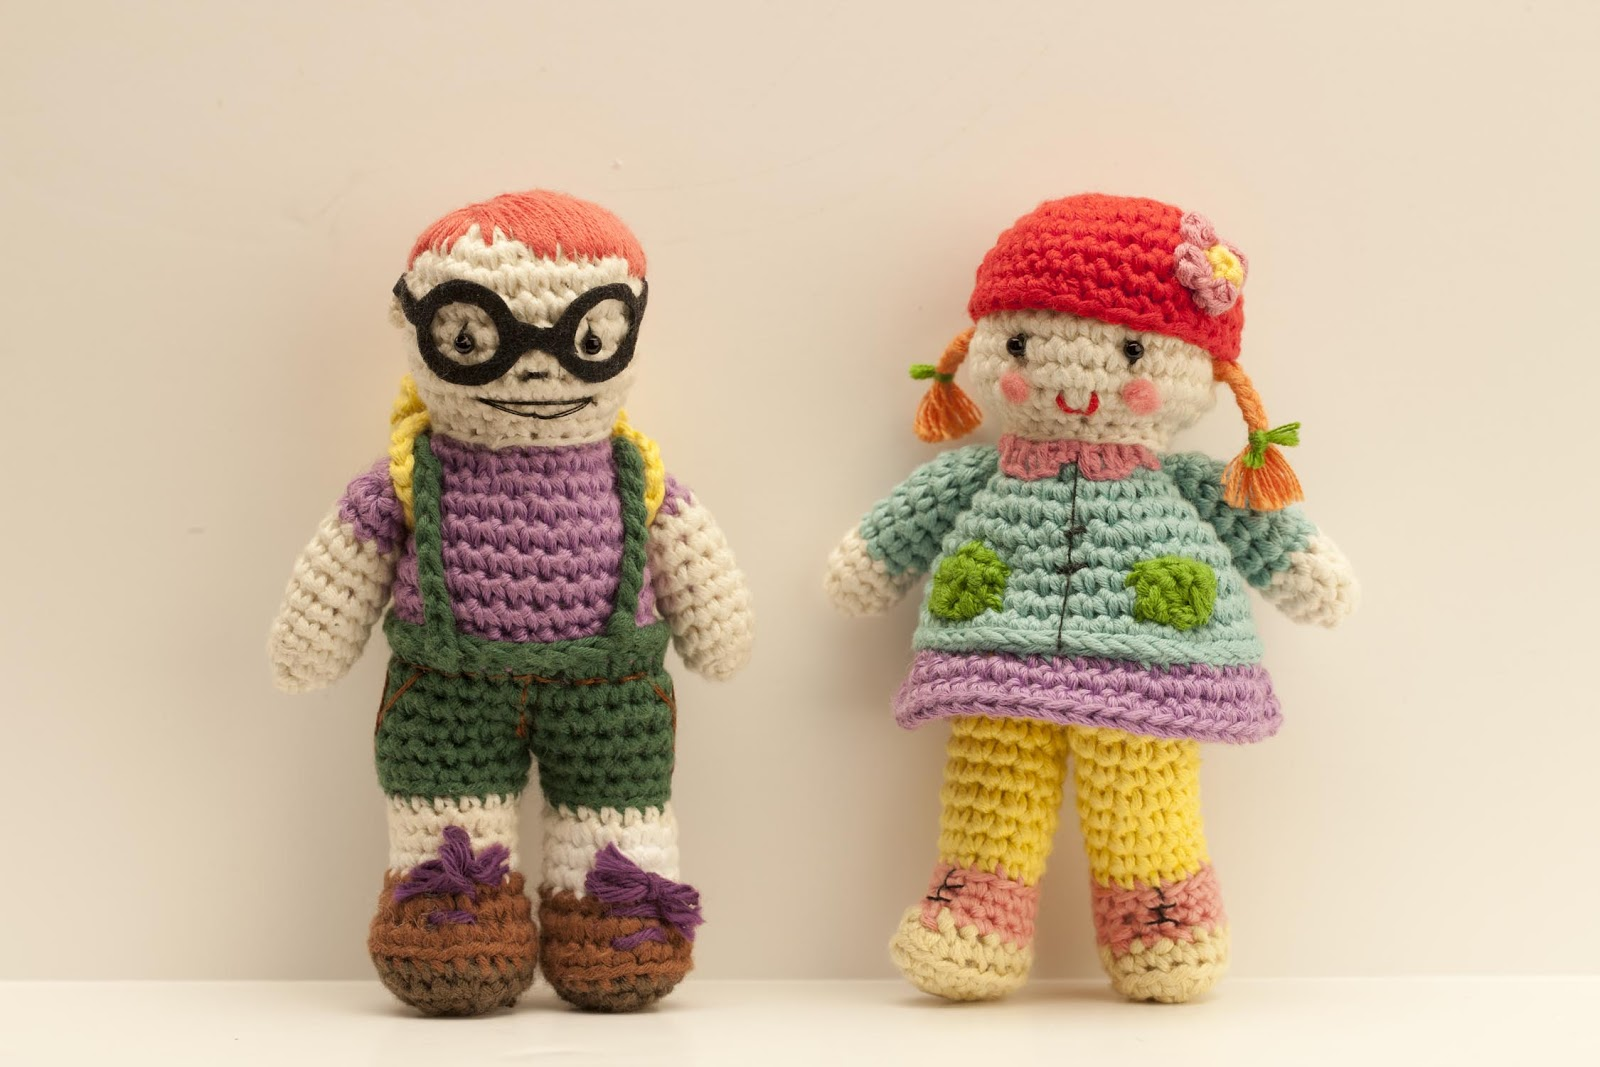 1000+ images about Amigurumi dolls -small on Pinterest ...